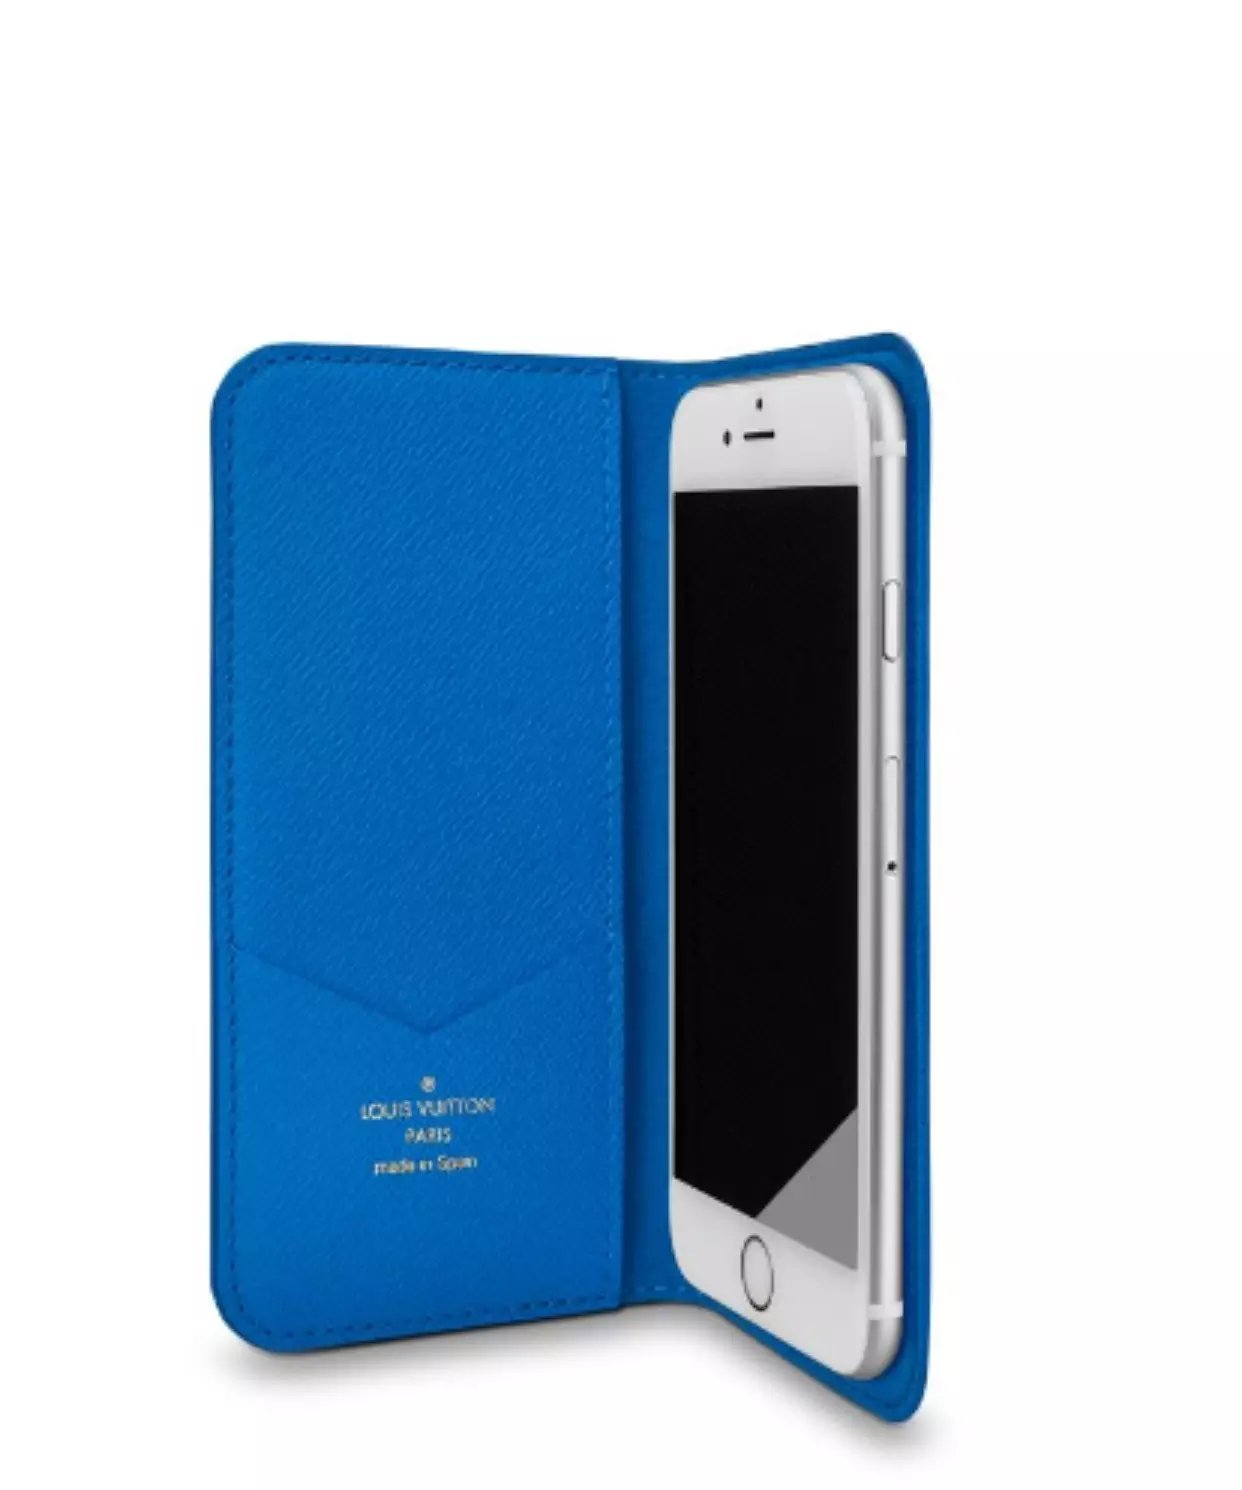 iphone hülle mit foto bedrucken holzhüllen iphone Louis Vuitton iphone6 plus hülle iphone 6 Plus a6 braun iphone ca6 design handyhülle bedrucken las6n designer handyhüllen handyhülle 6lber bedrucken fotohülle iphone